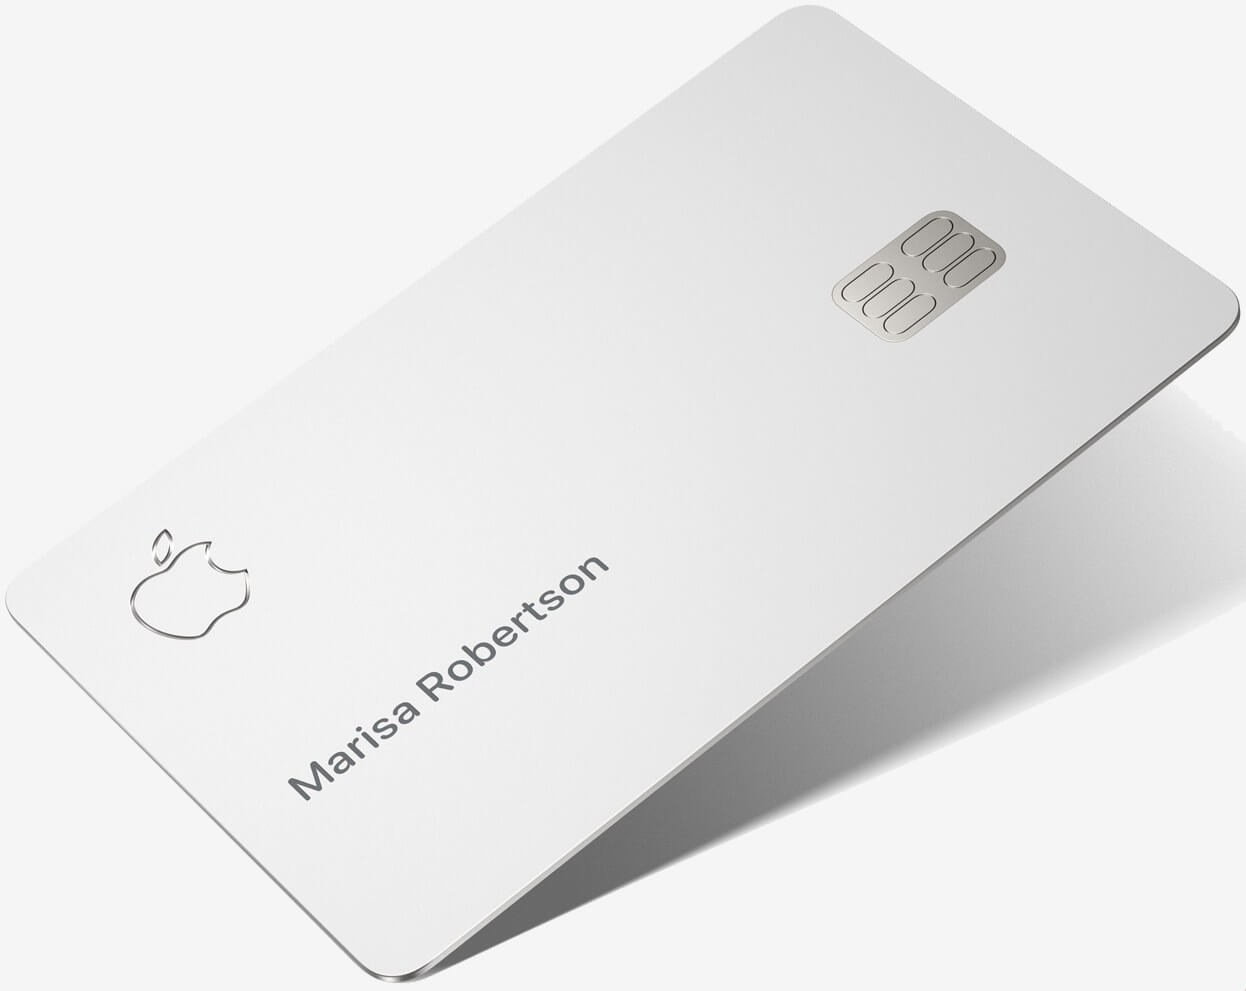 Apple Card is now available to all iPhone users in the US, with a